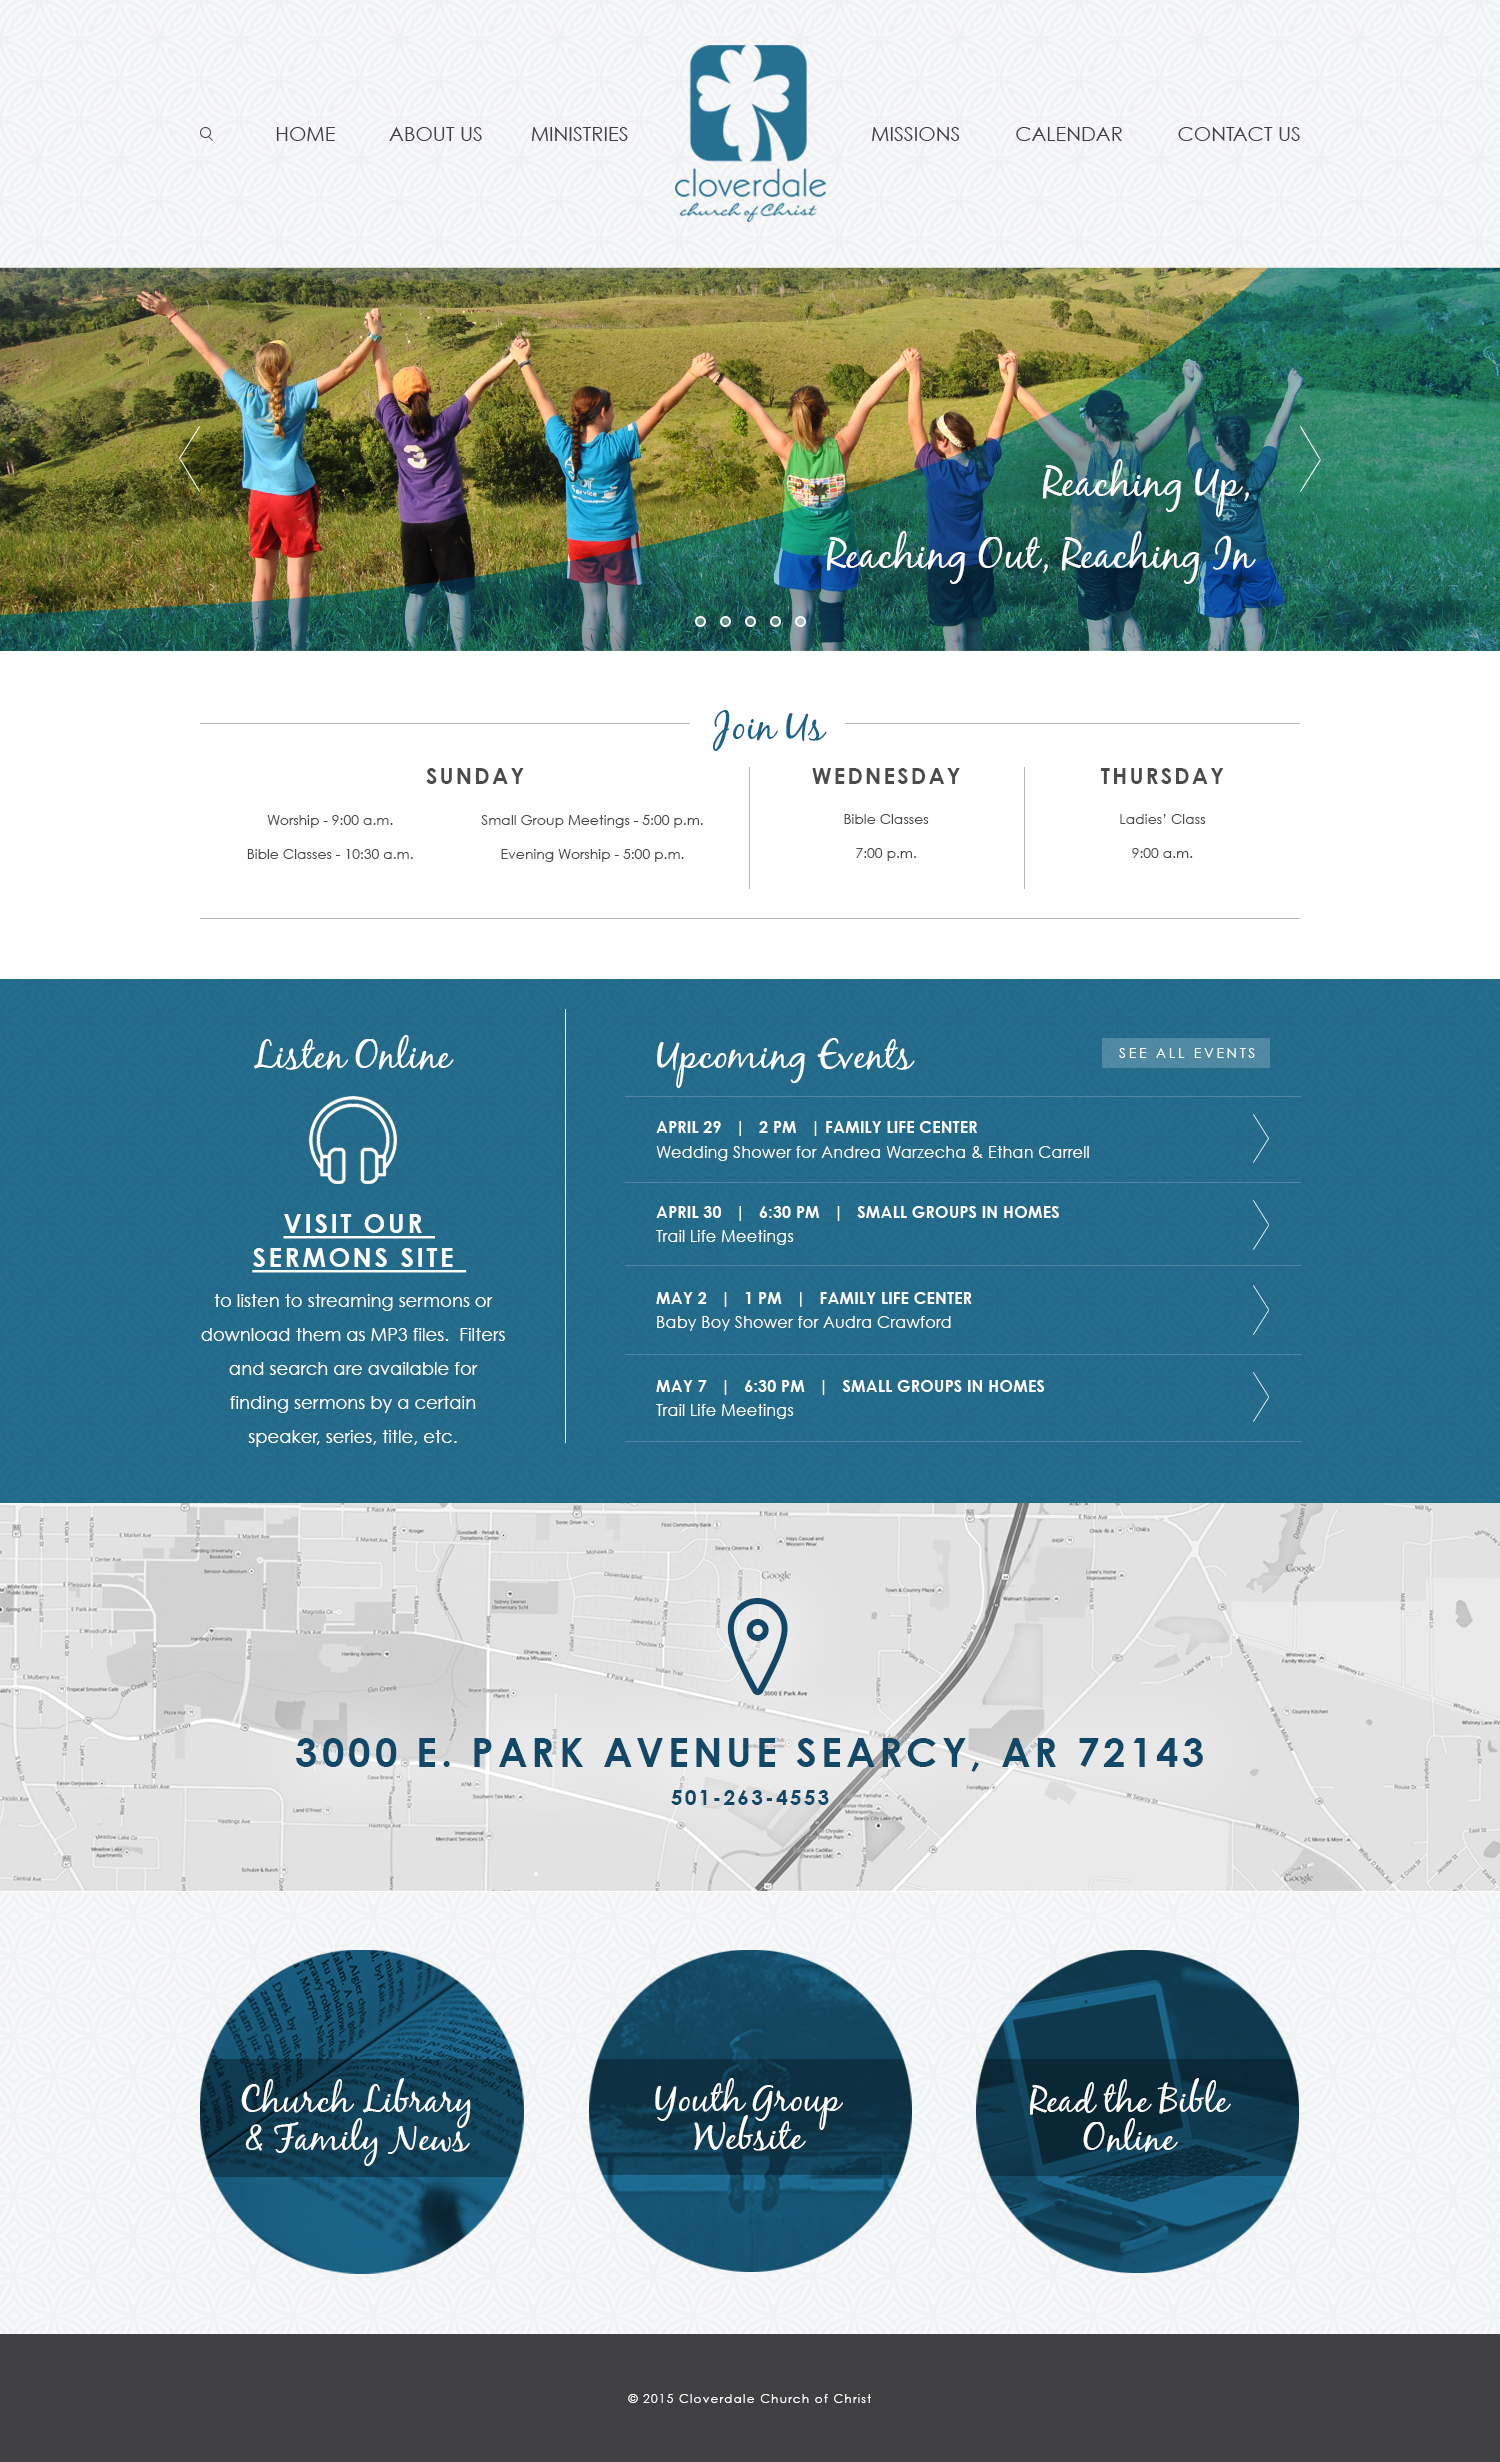 Cloverdale Church of Christ Web Design Home Page